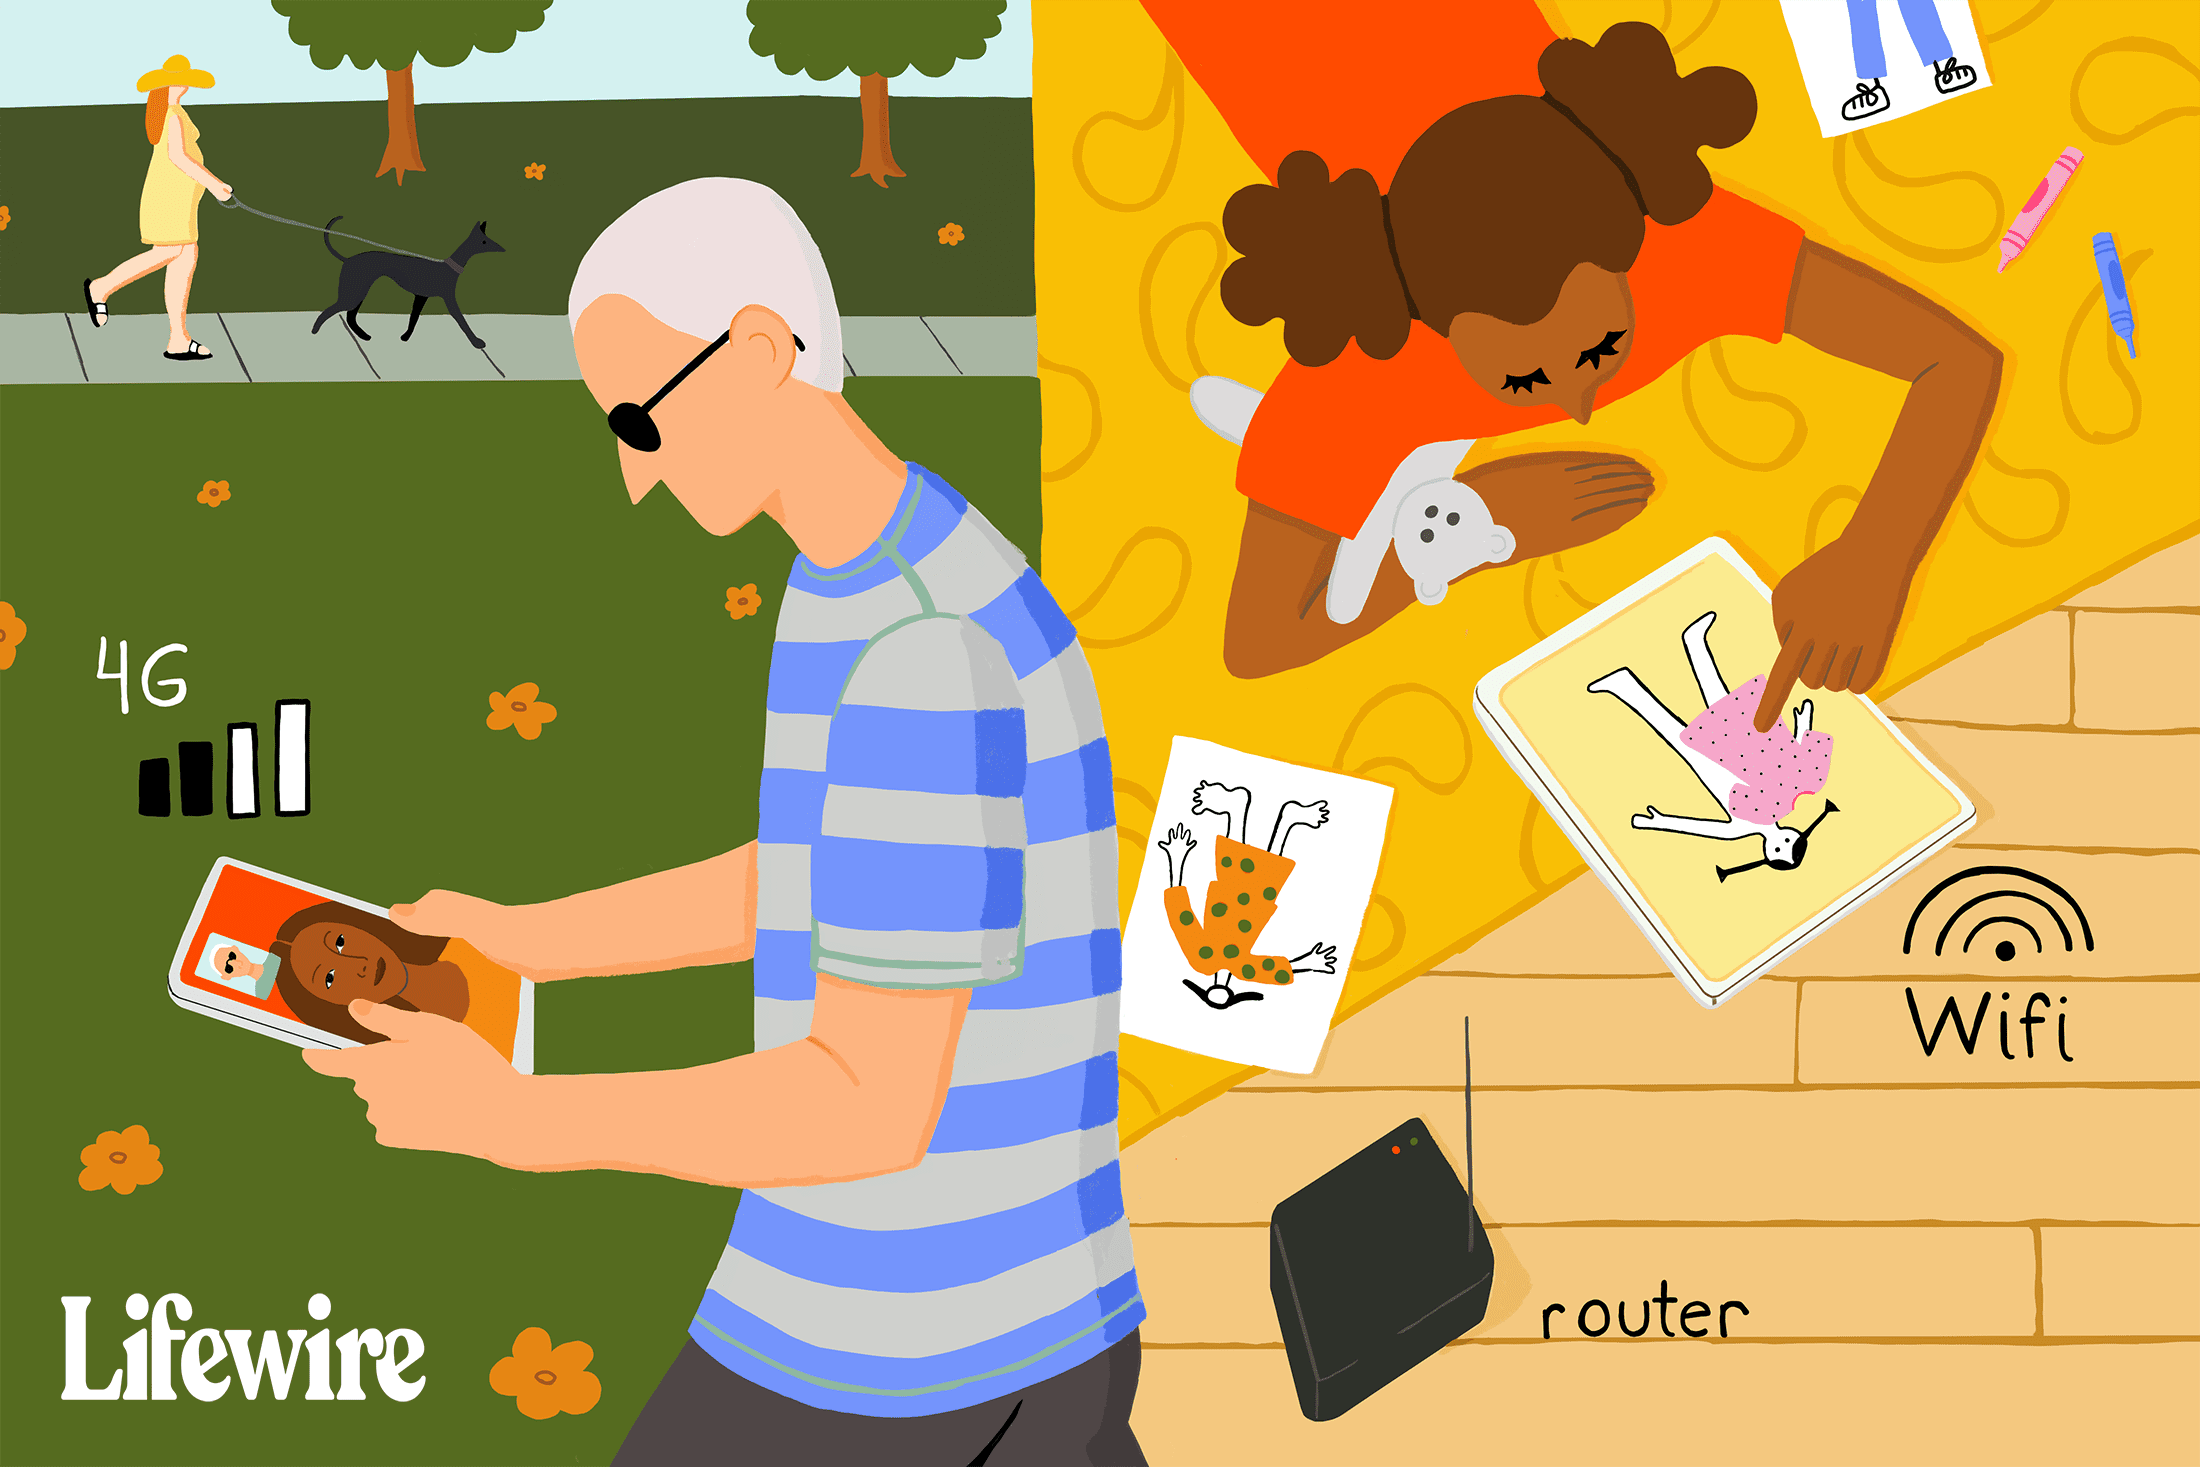 Illustration showing a person on the go with a 4G iPad and another person at home with an iPad and a Wi-Fi router